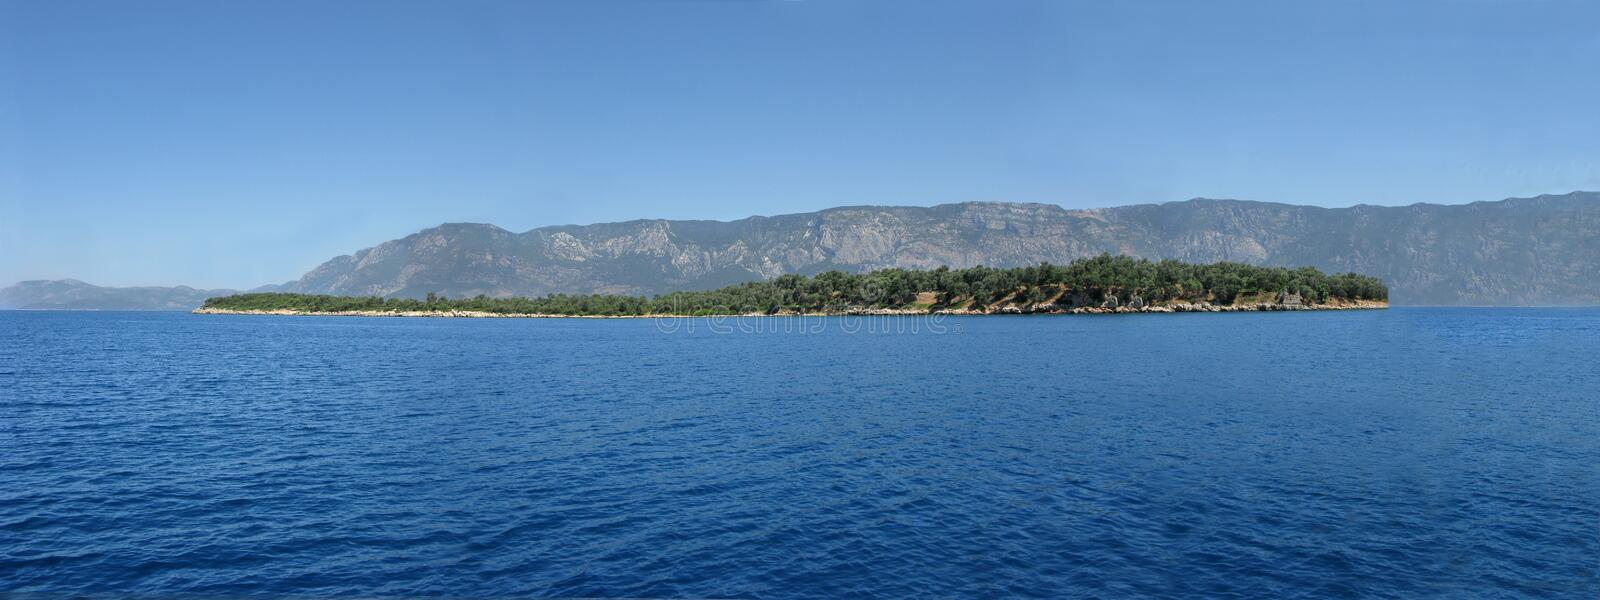 Download Panorama Of An Island In The Aegean Sea Stock Photo - Image: 10928194